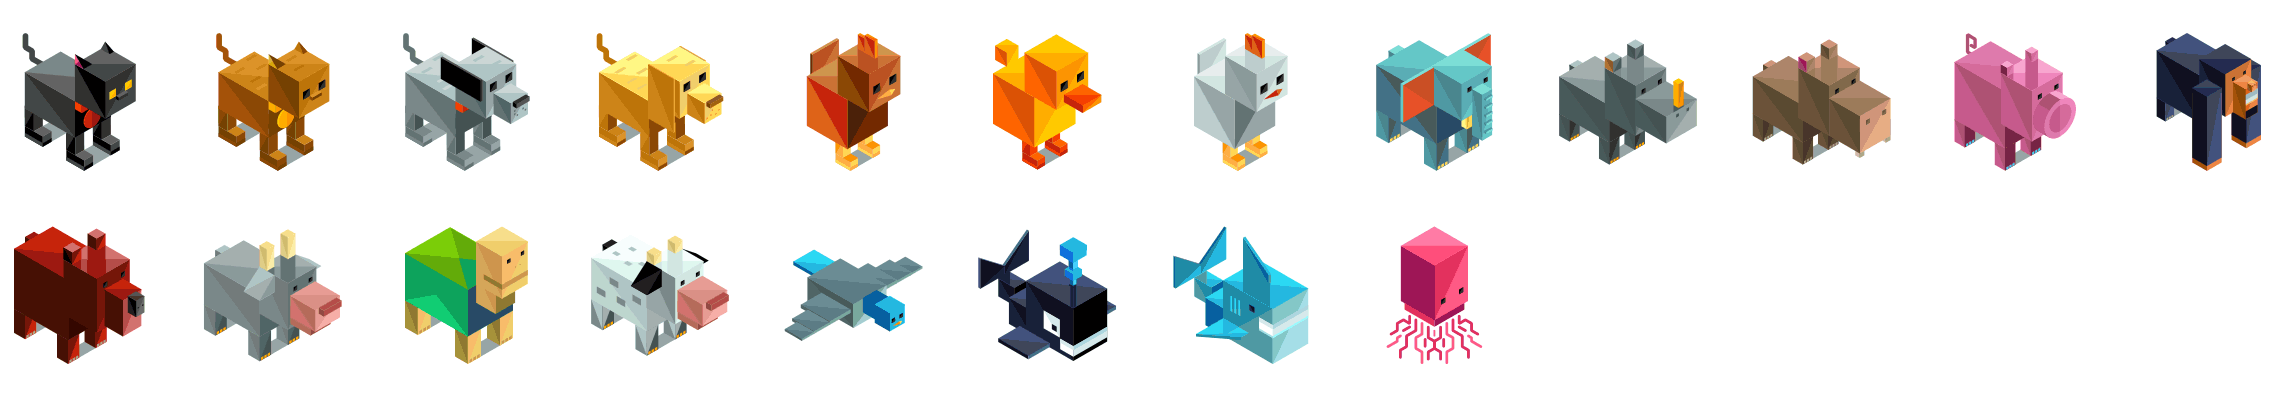 animal-isometric-icons-preview